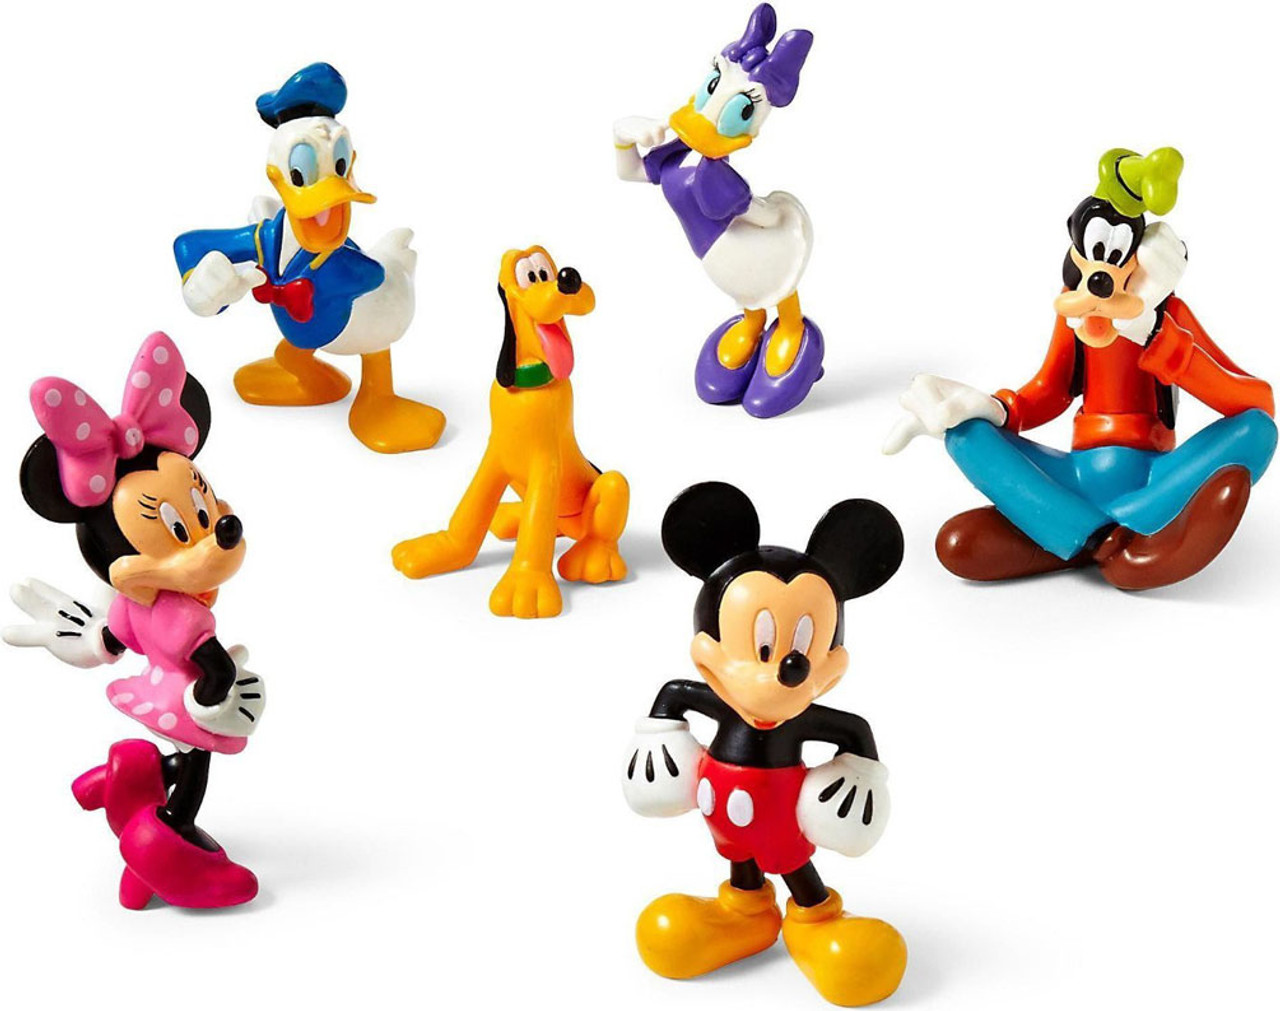 Disney Mickey Mouse Clubhouse Figurine Playset Exclusive